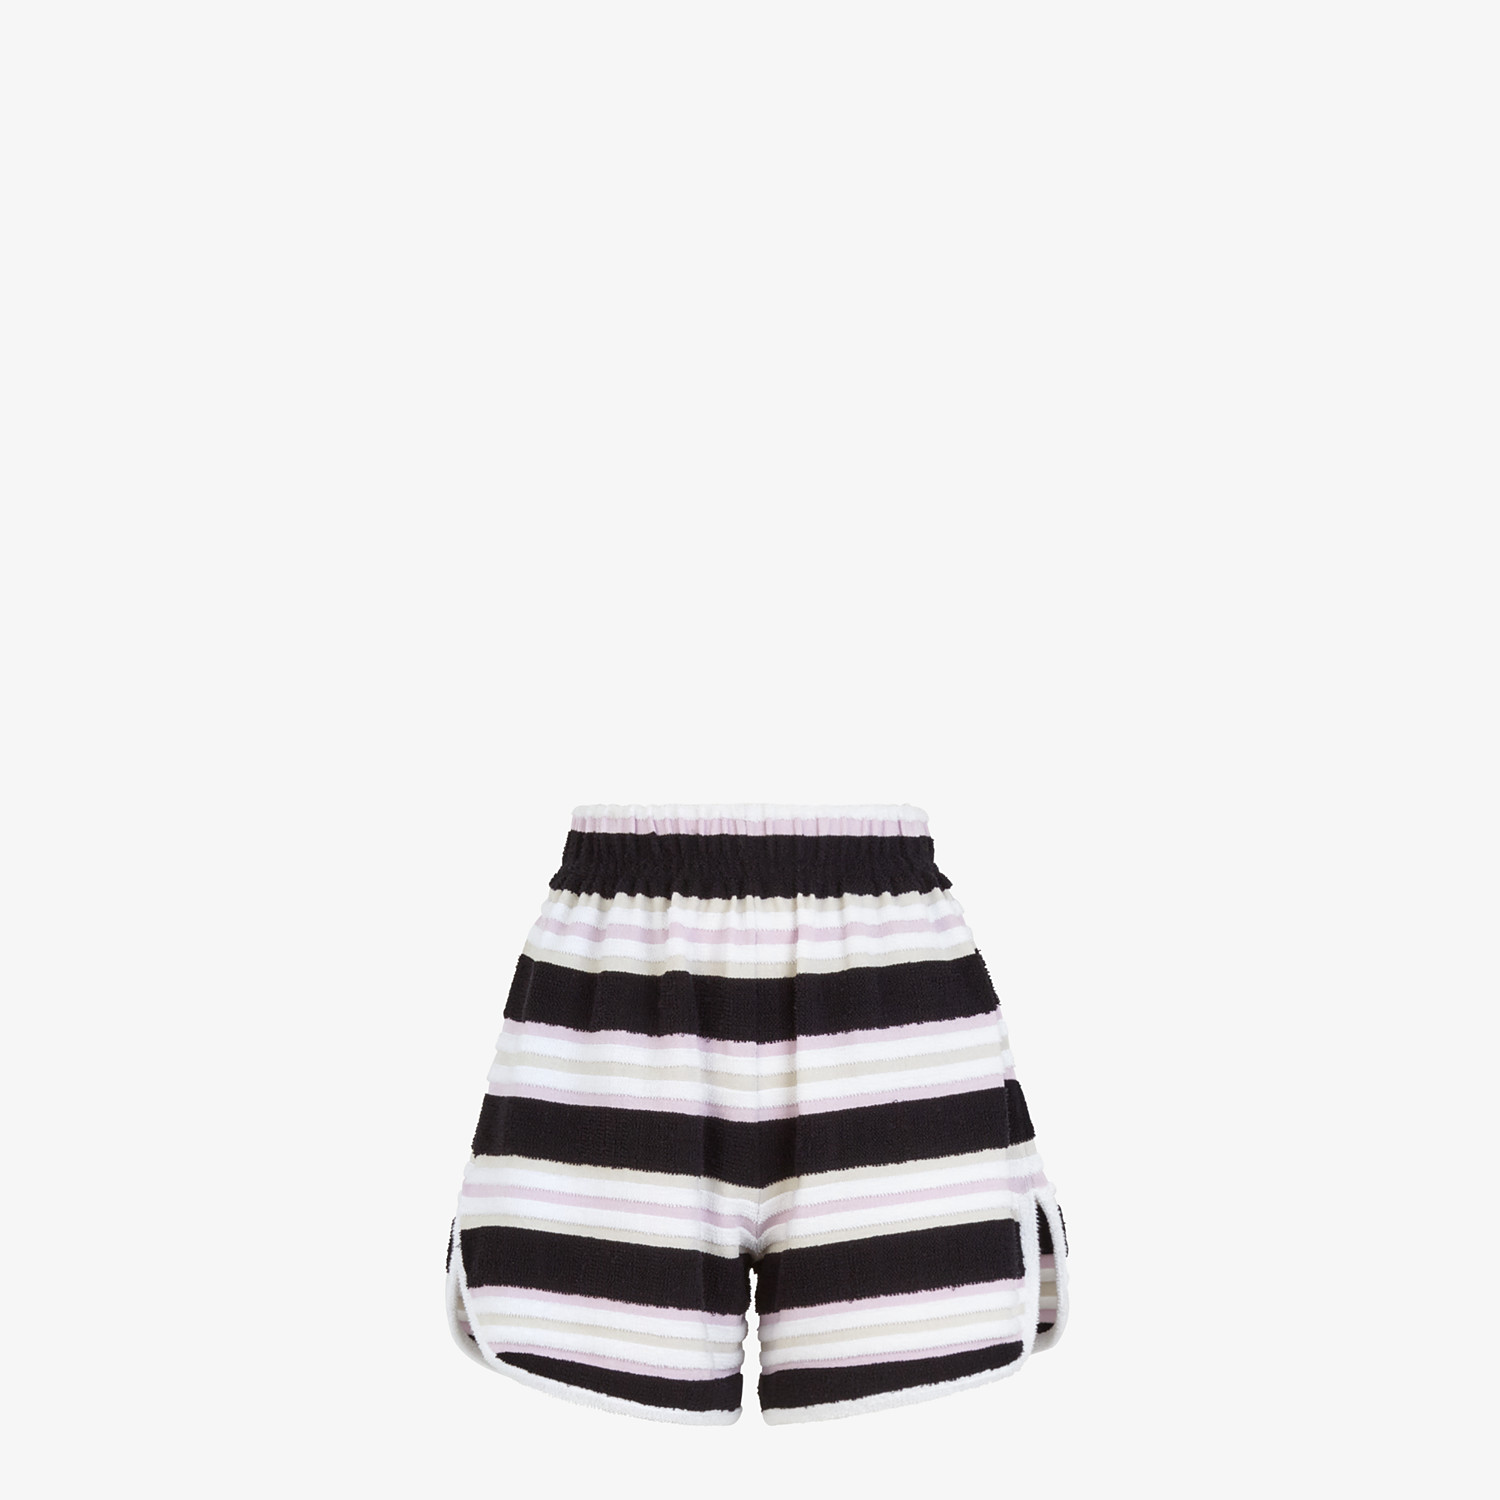 FENDI SHORTS - Multicolor cotton shorts - view 1 detail